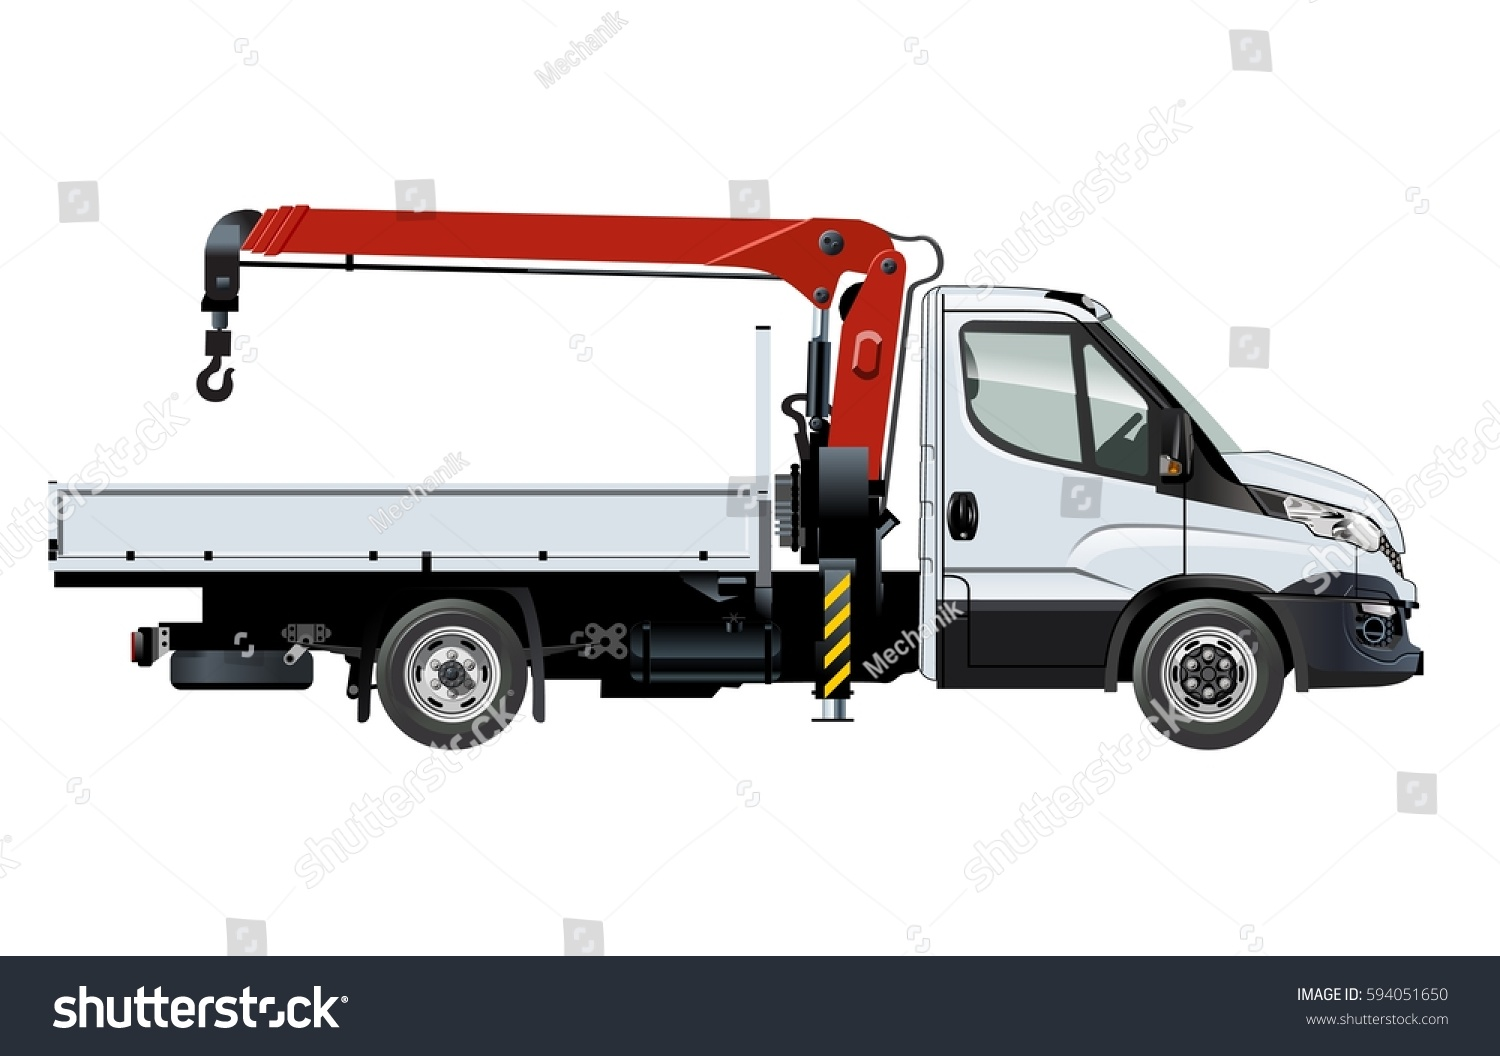 vector crane truck template isolated on white available eps10 separated by groups and